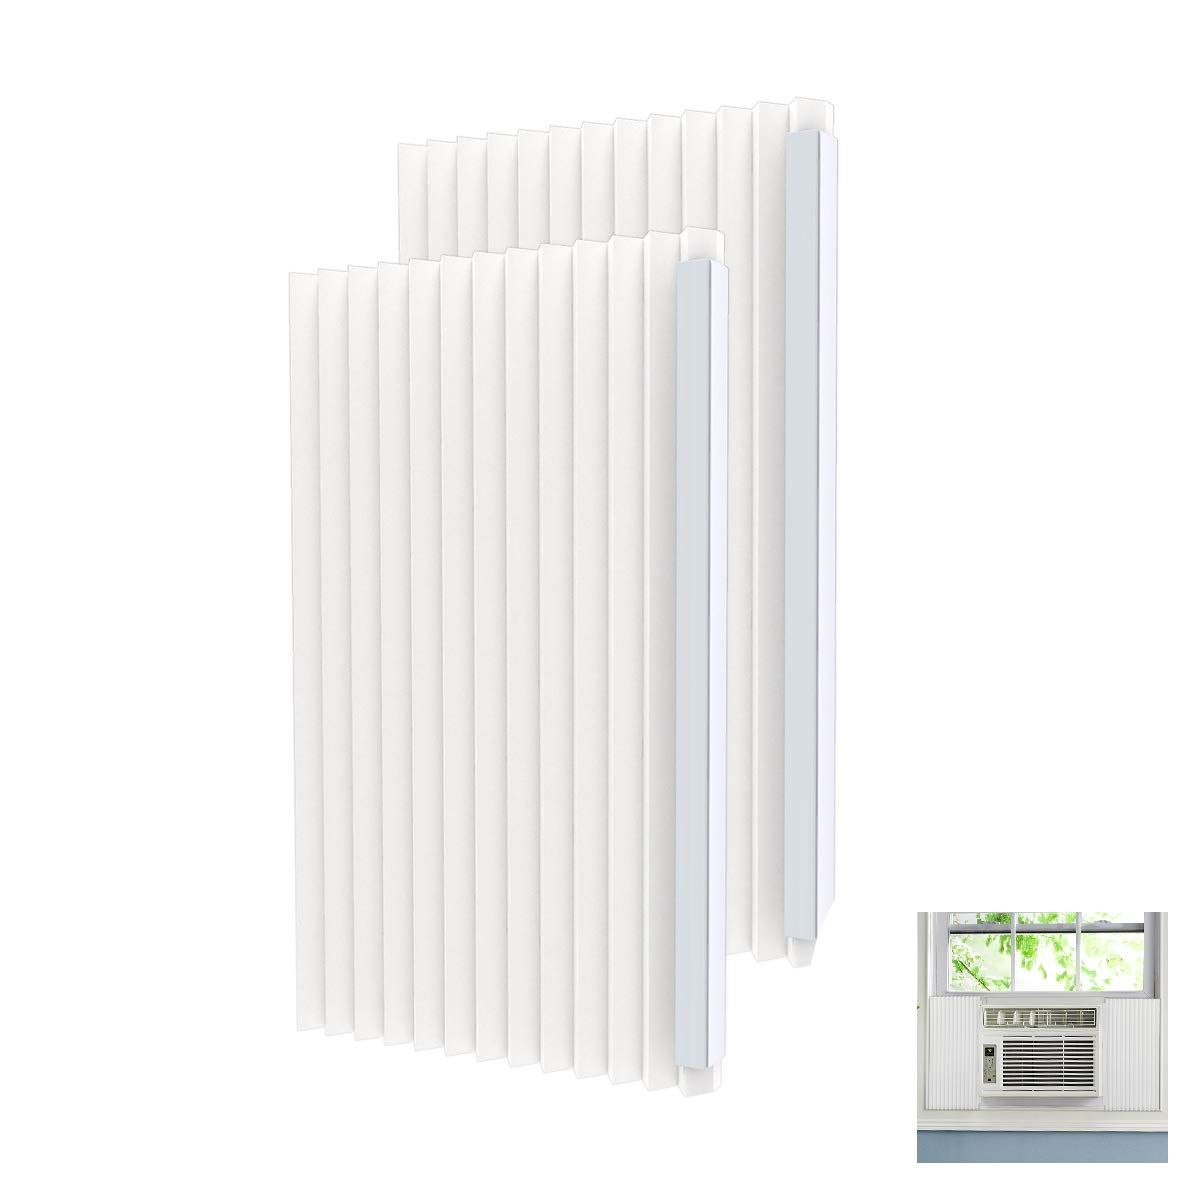 Forestchill Window Air Conditioner Side Insulated Foam Panel Kit, AC Units Insulation Panels Set 17 in X 9 in X 7/8 in, Pack of 2, White